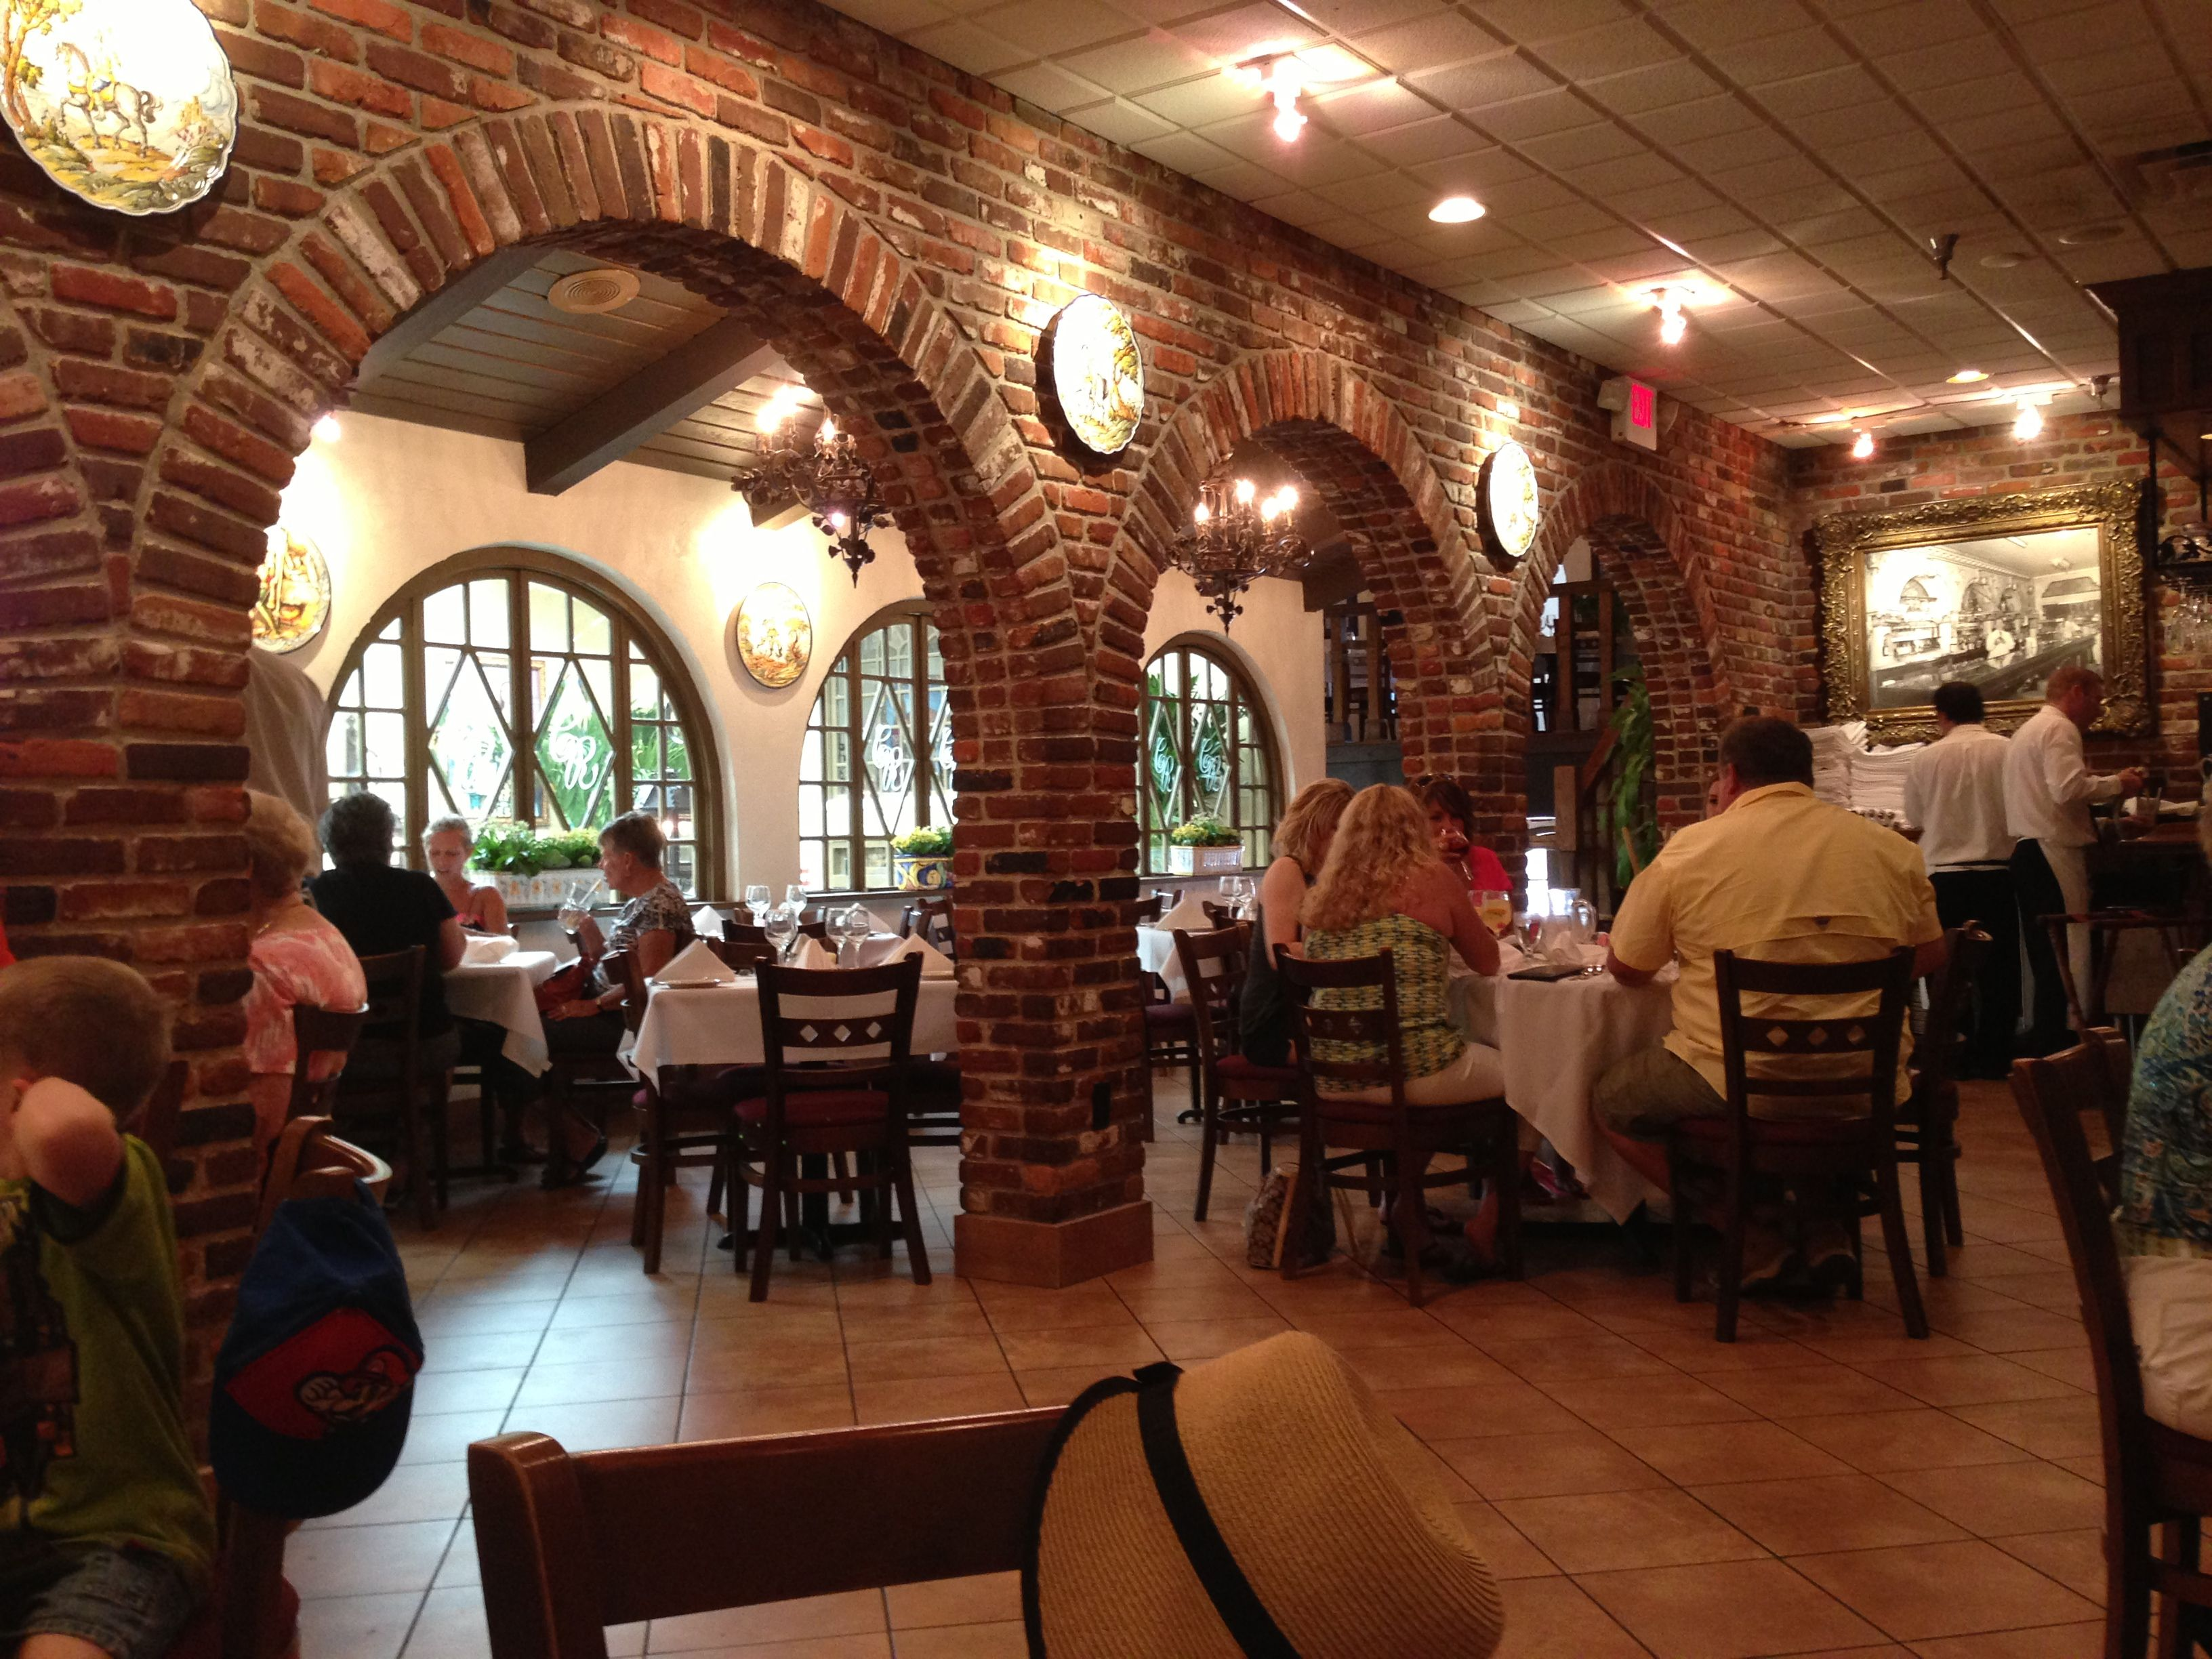 Free things to do in st augustine fl, THAIPOLICEPLUS.COM